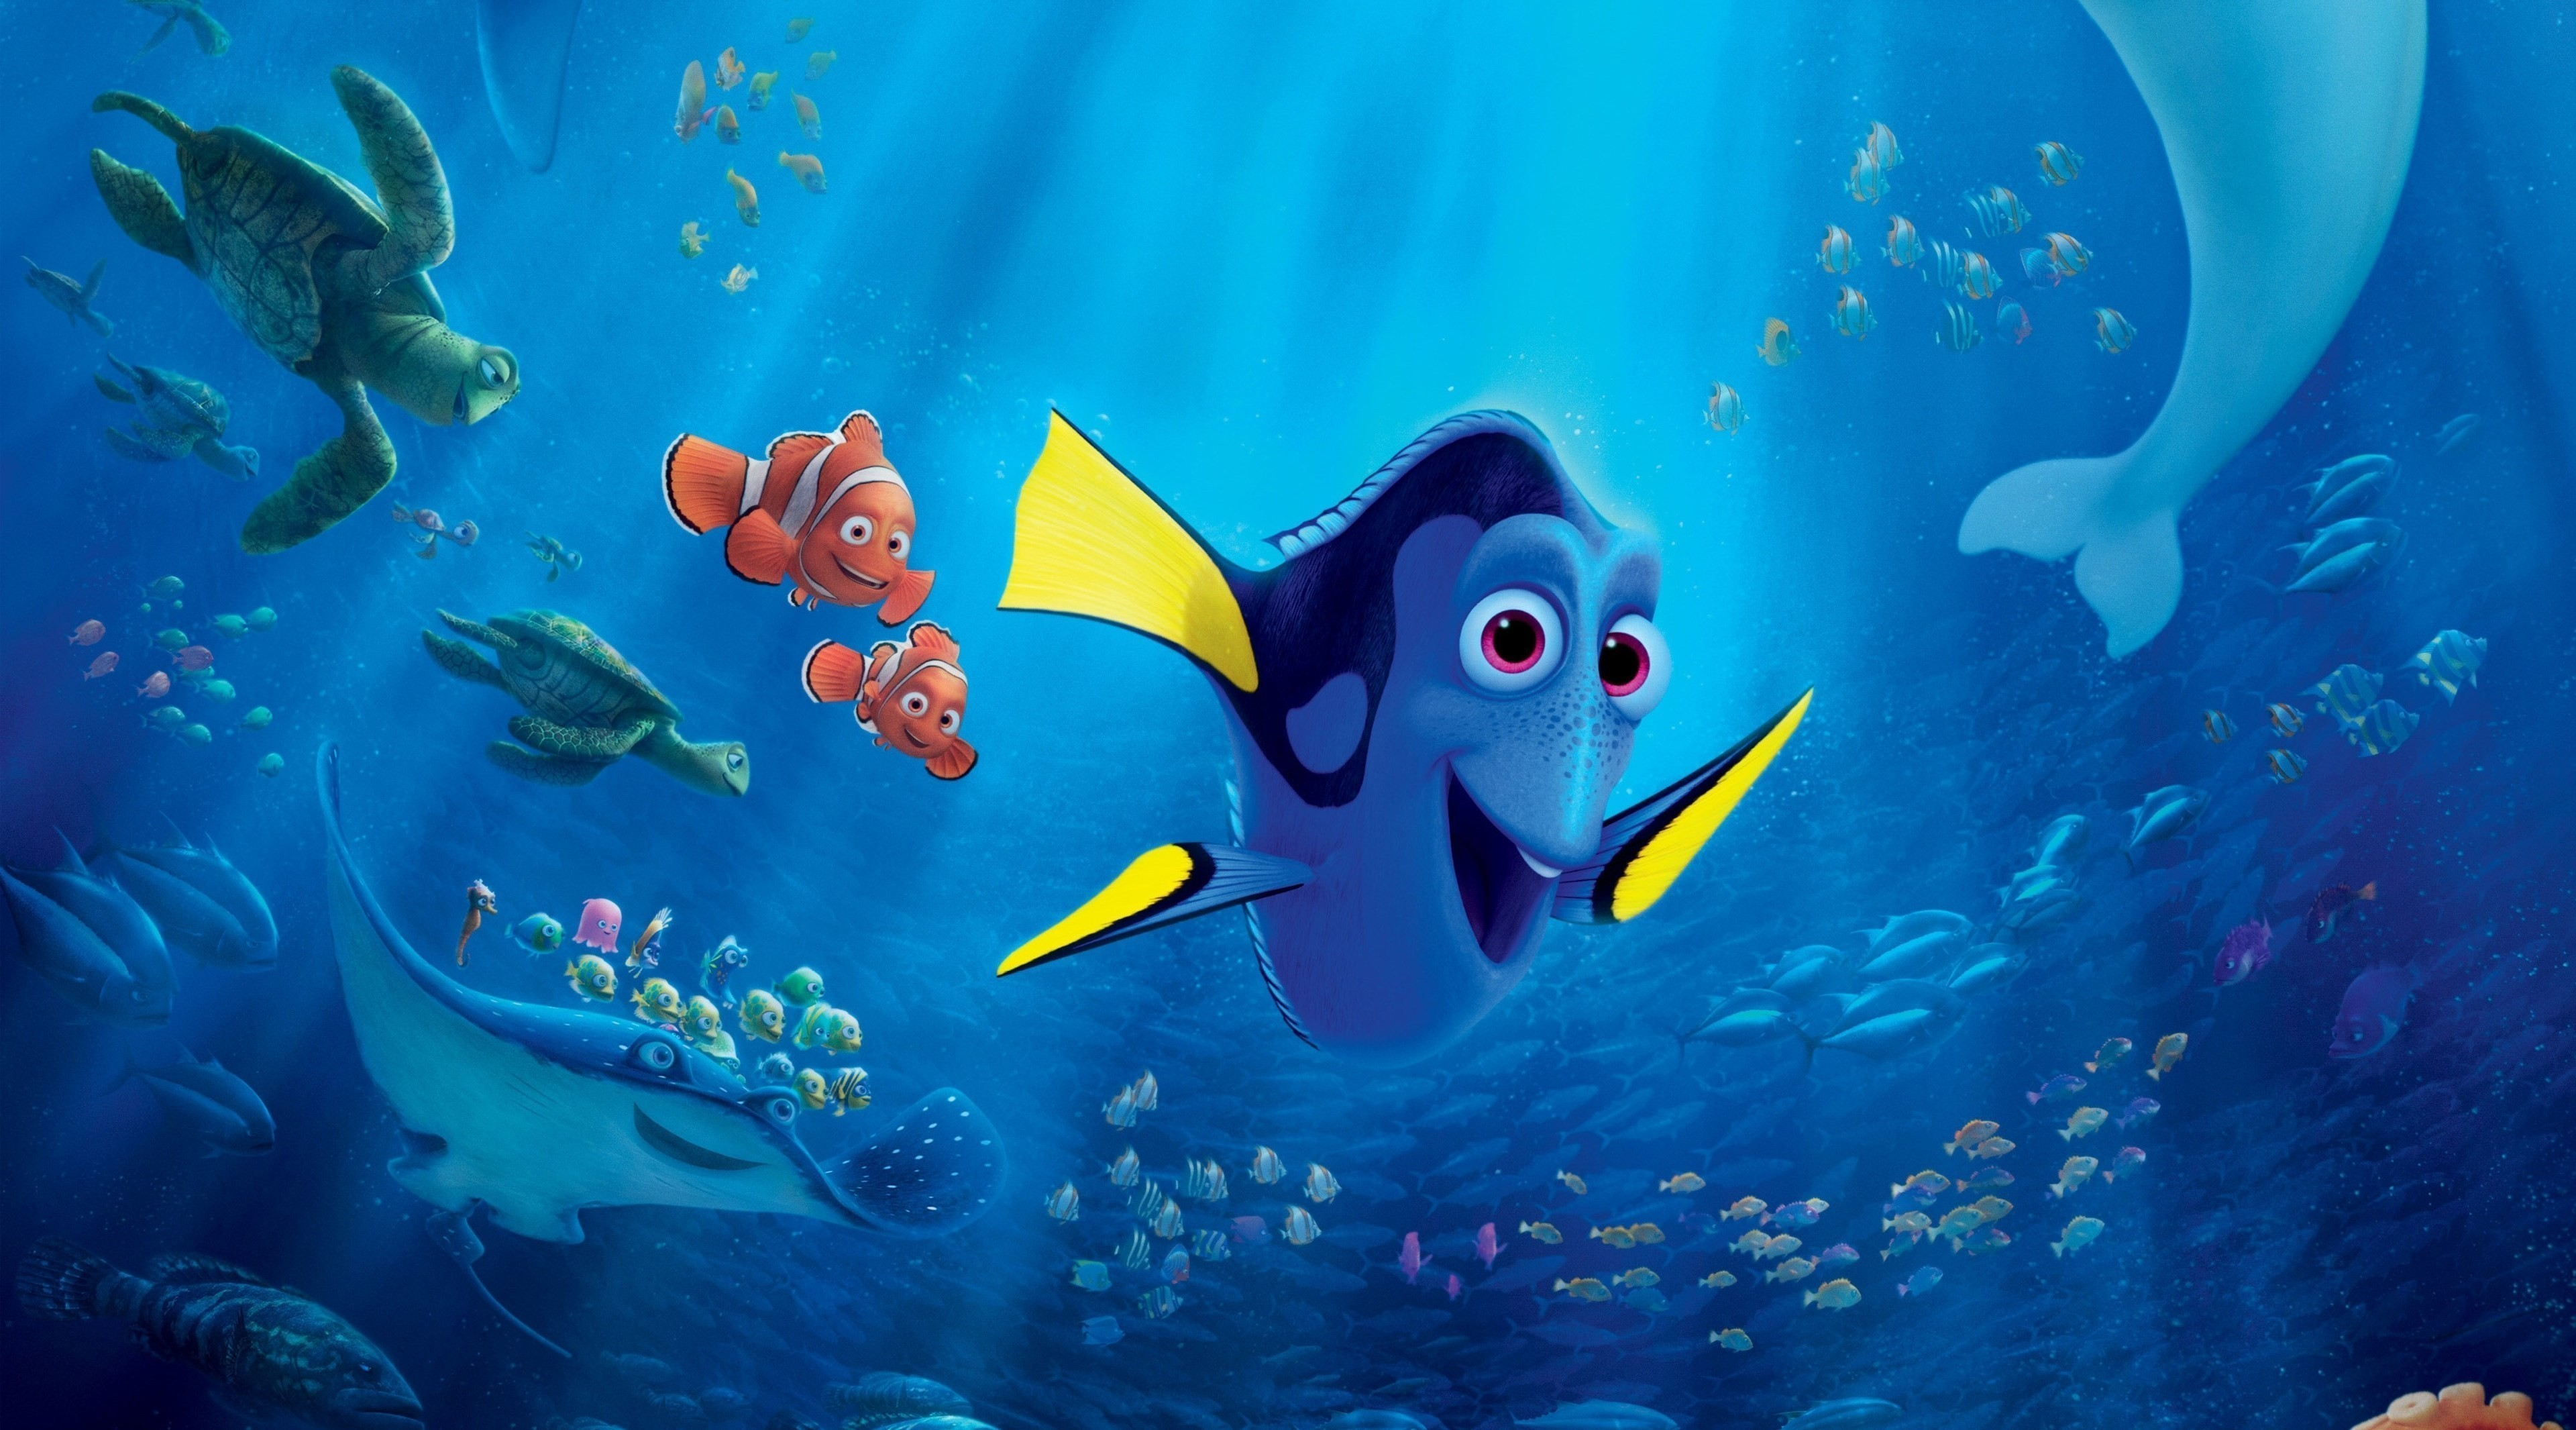 3840x2131 Finding Nemo Poster Fresh Movie Hd Wallpaper Dory A